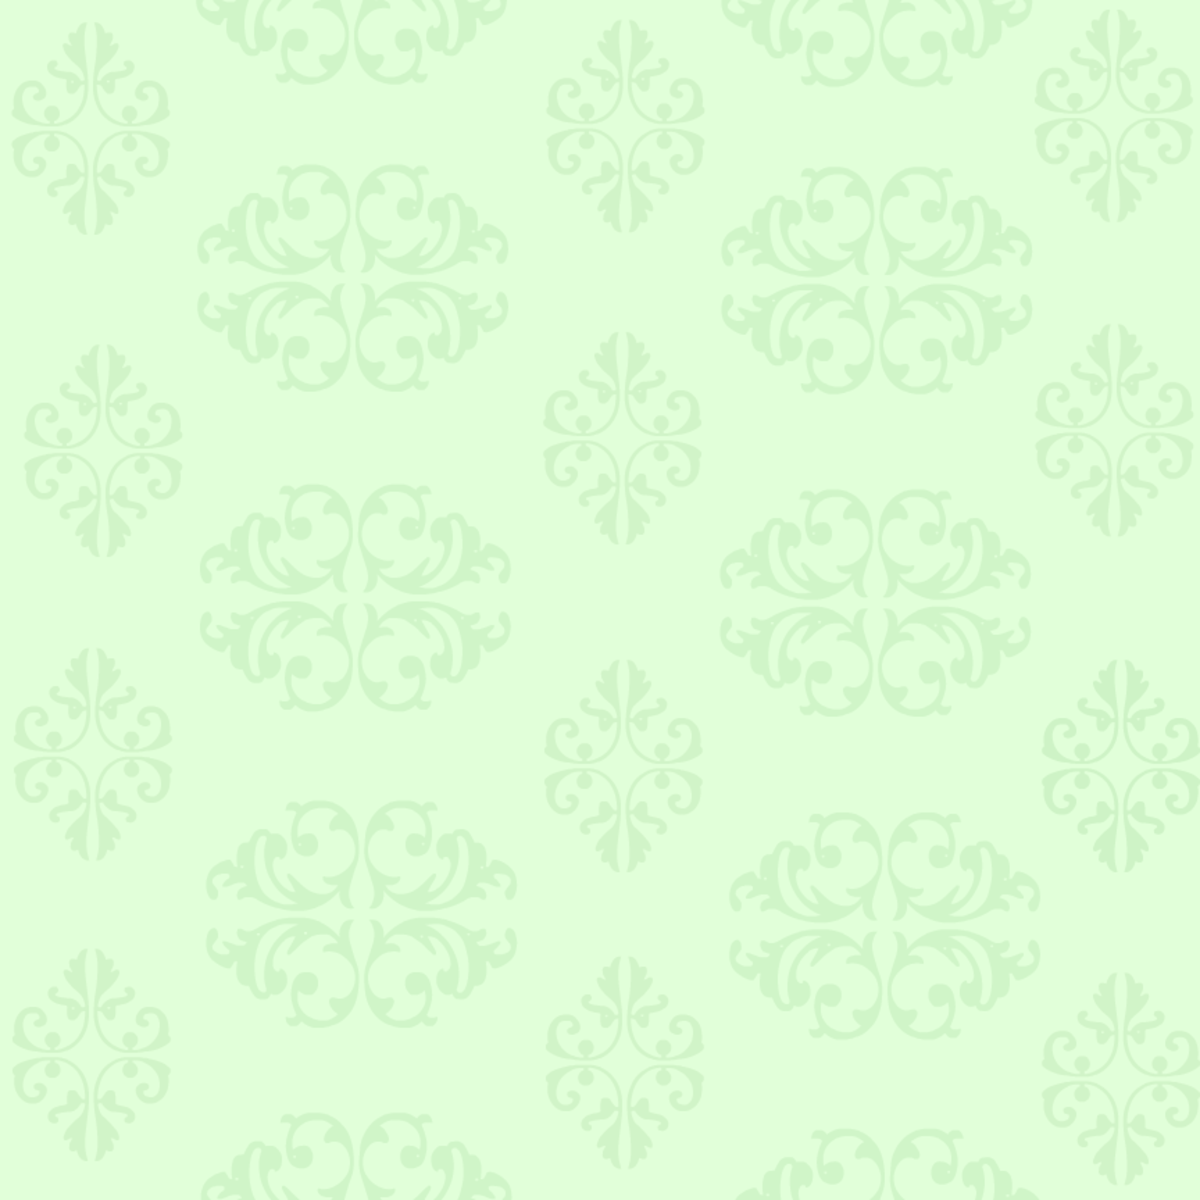 Free scrapbooking supplies: Scrollwork on a green background